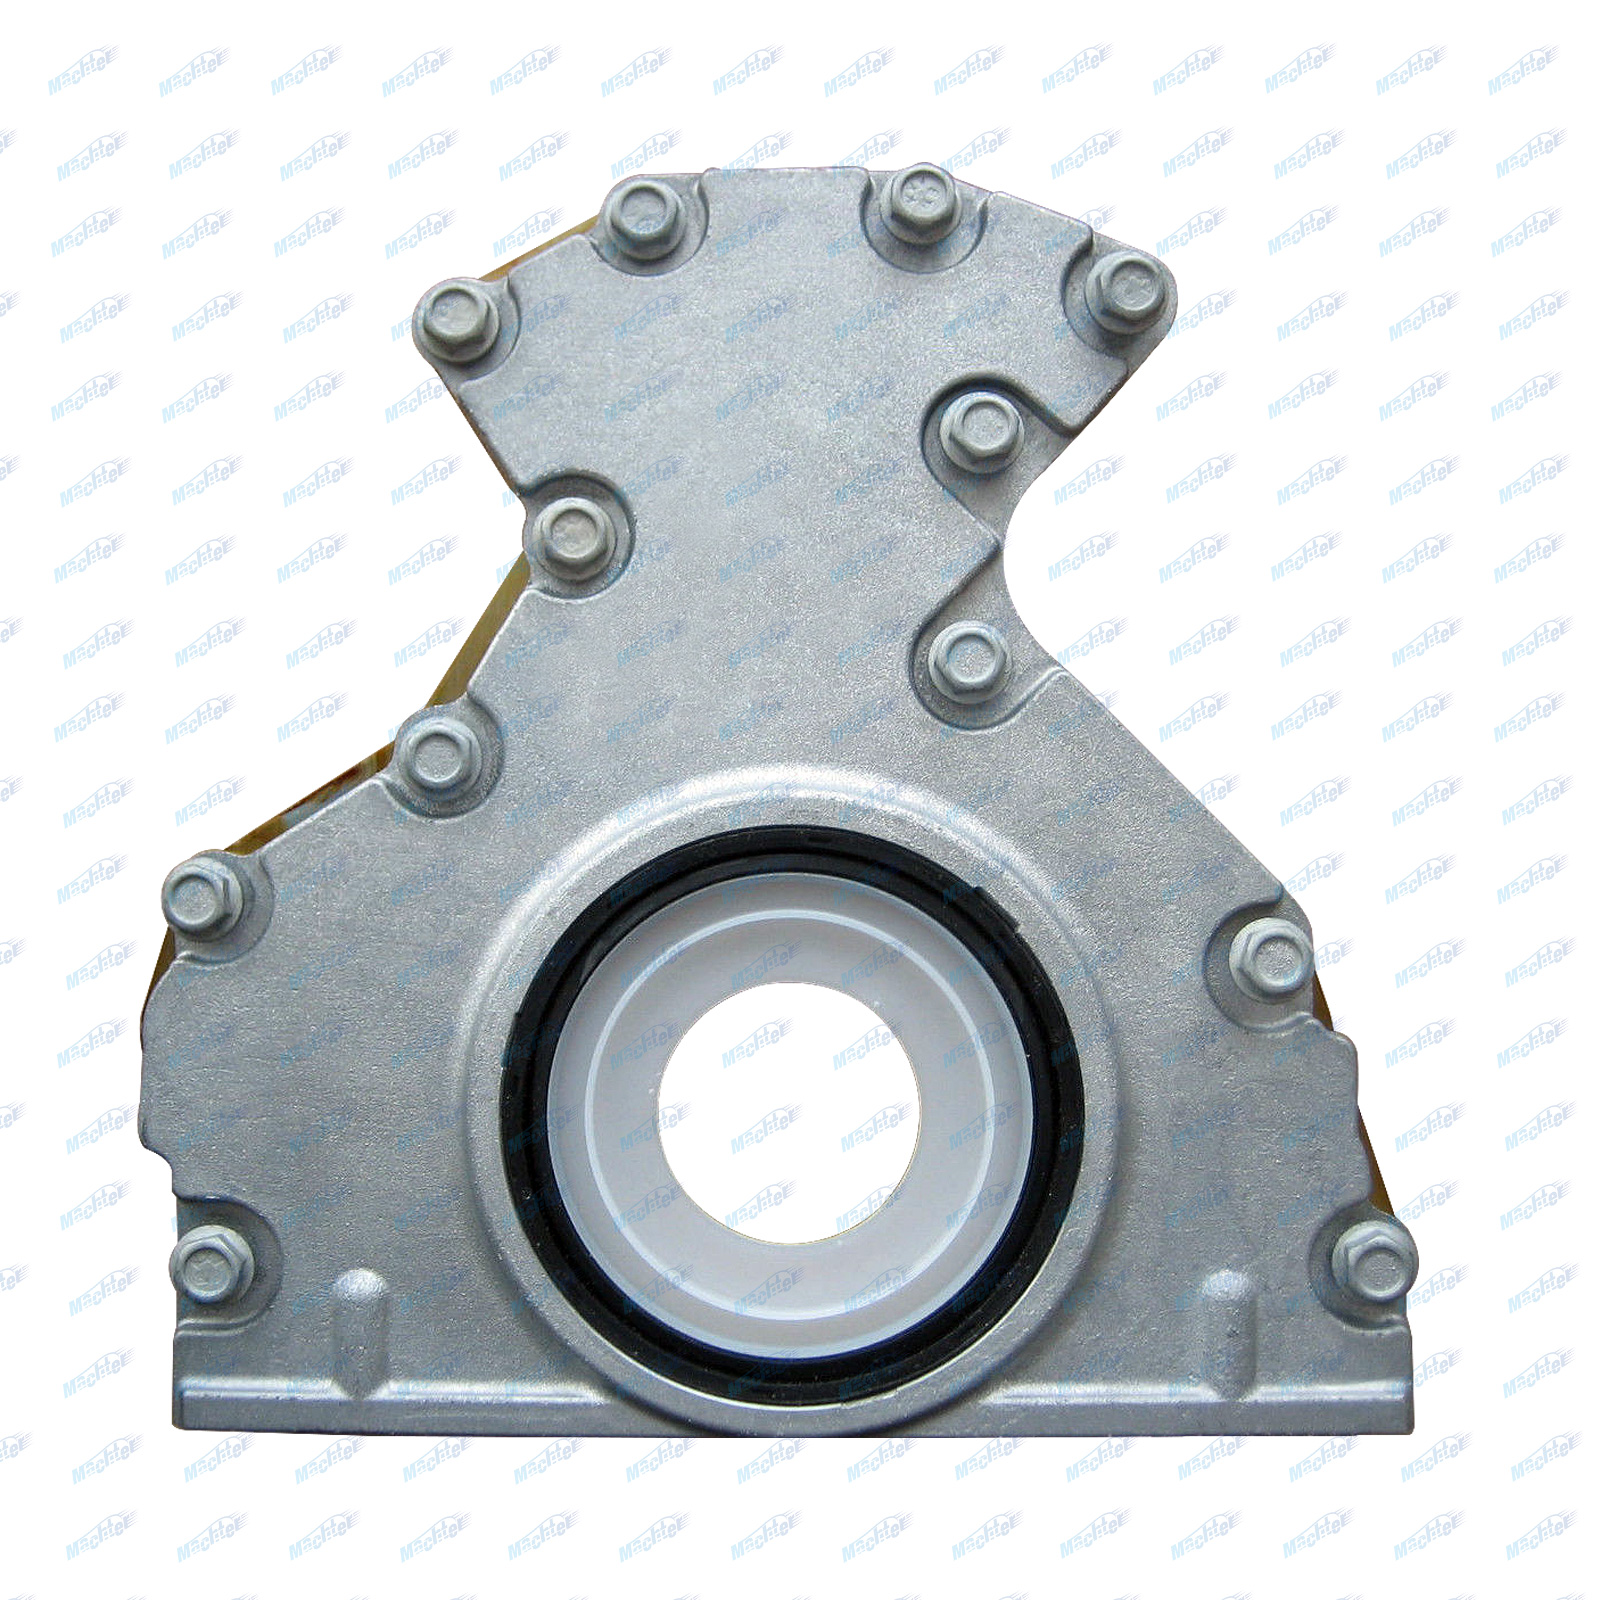 Ls2 Engine Plate: Holden V8 LS1 LS2 Rear Main Oil Seal Plate Housing